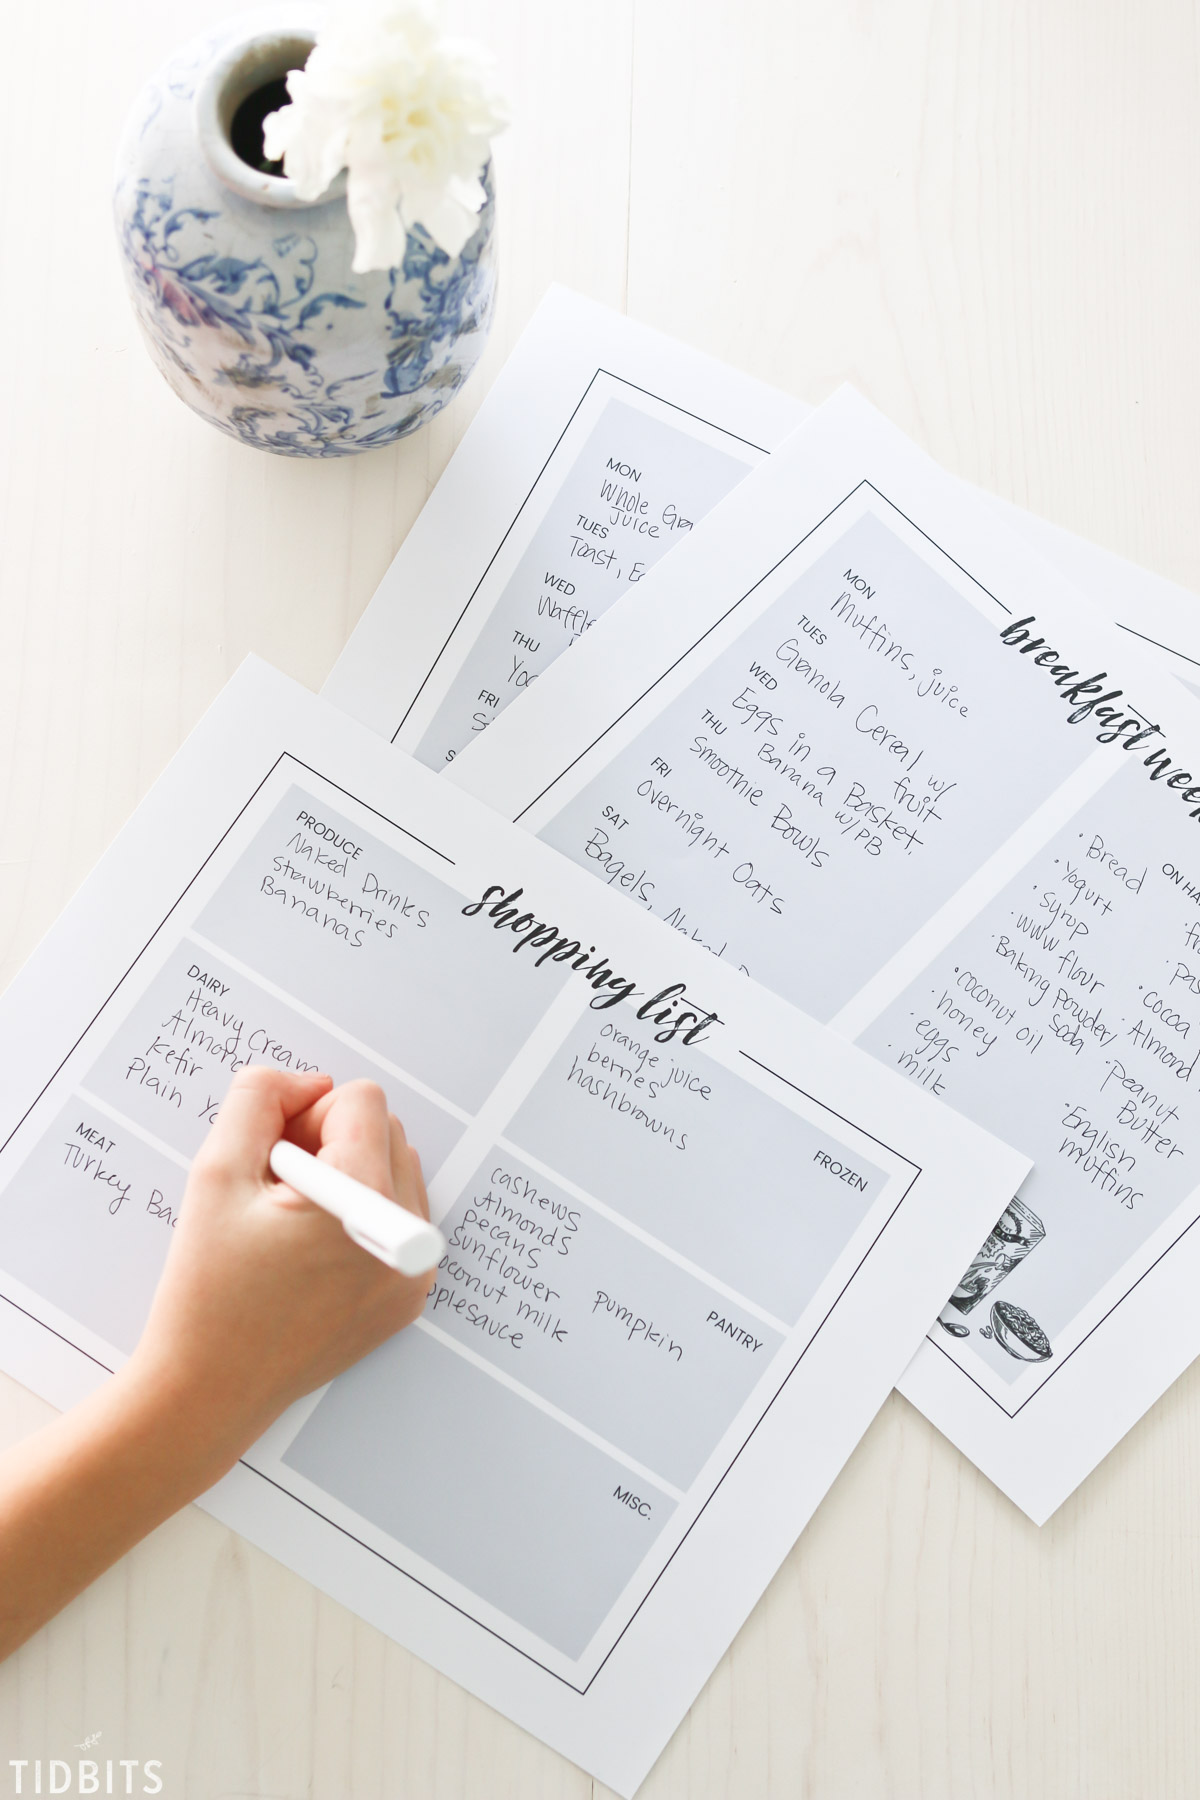 Breakfast Menu Planning Printables and Tips.